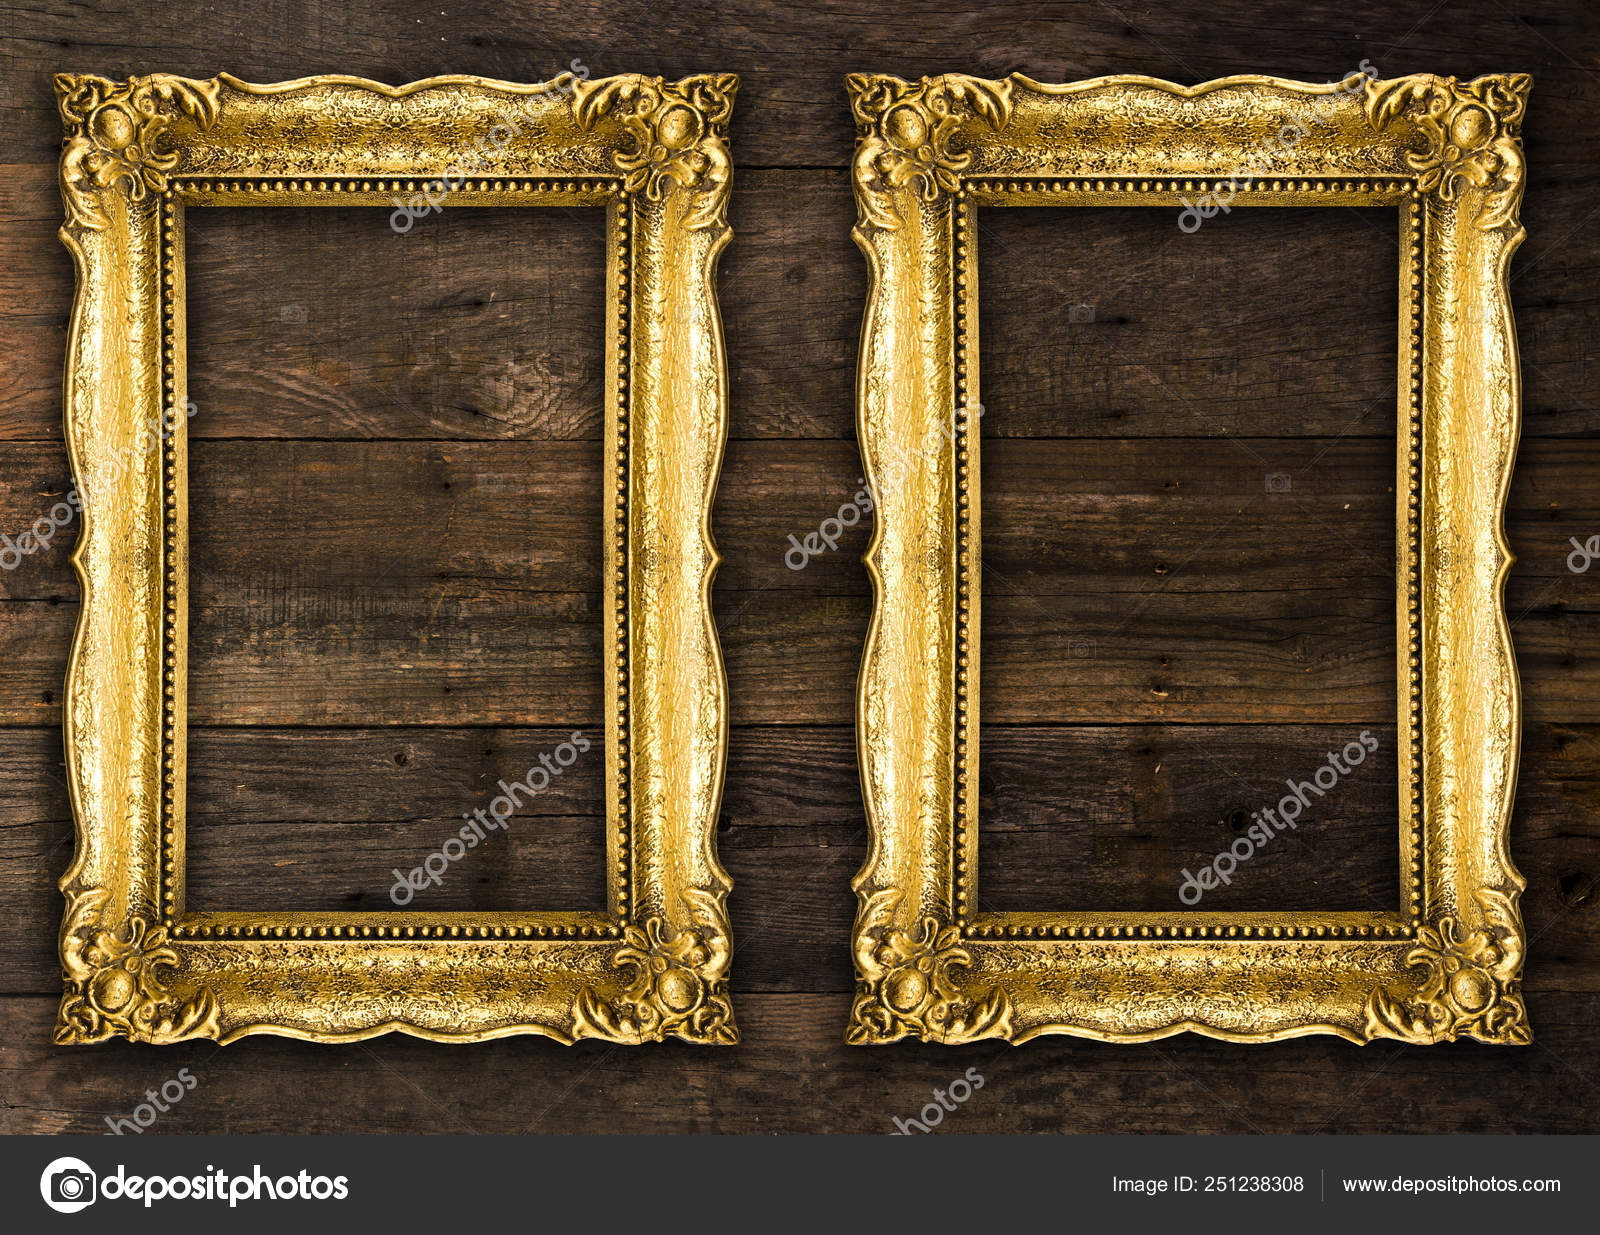 Two Retro Old Gold Rustic Picture Frames Stock Photo C Adam R 251238308